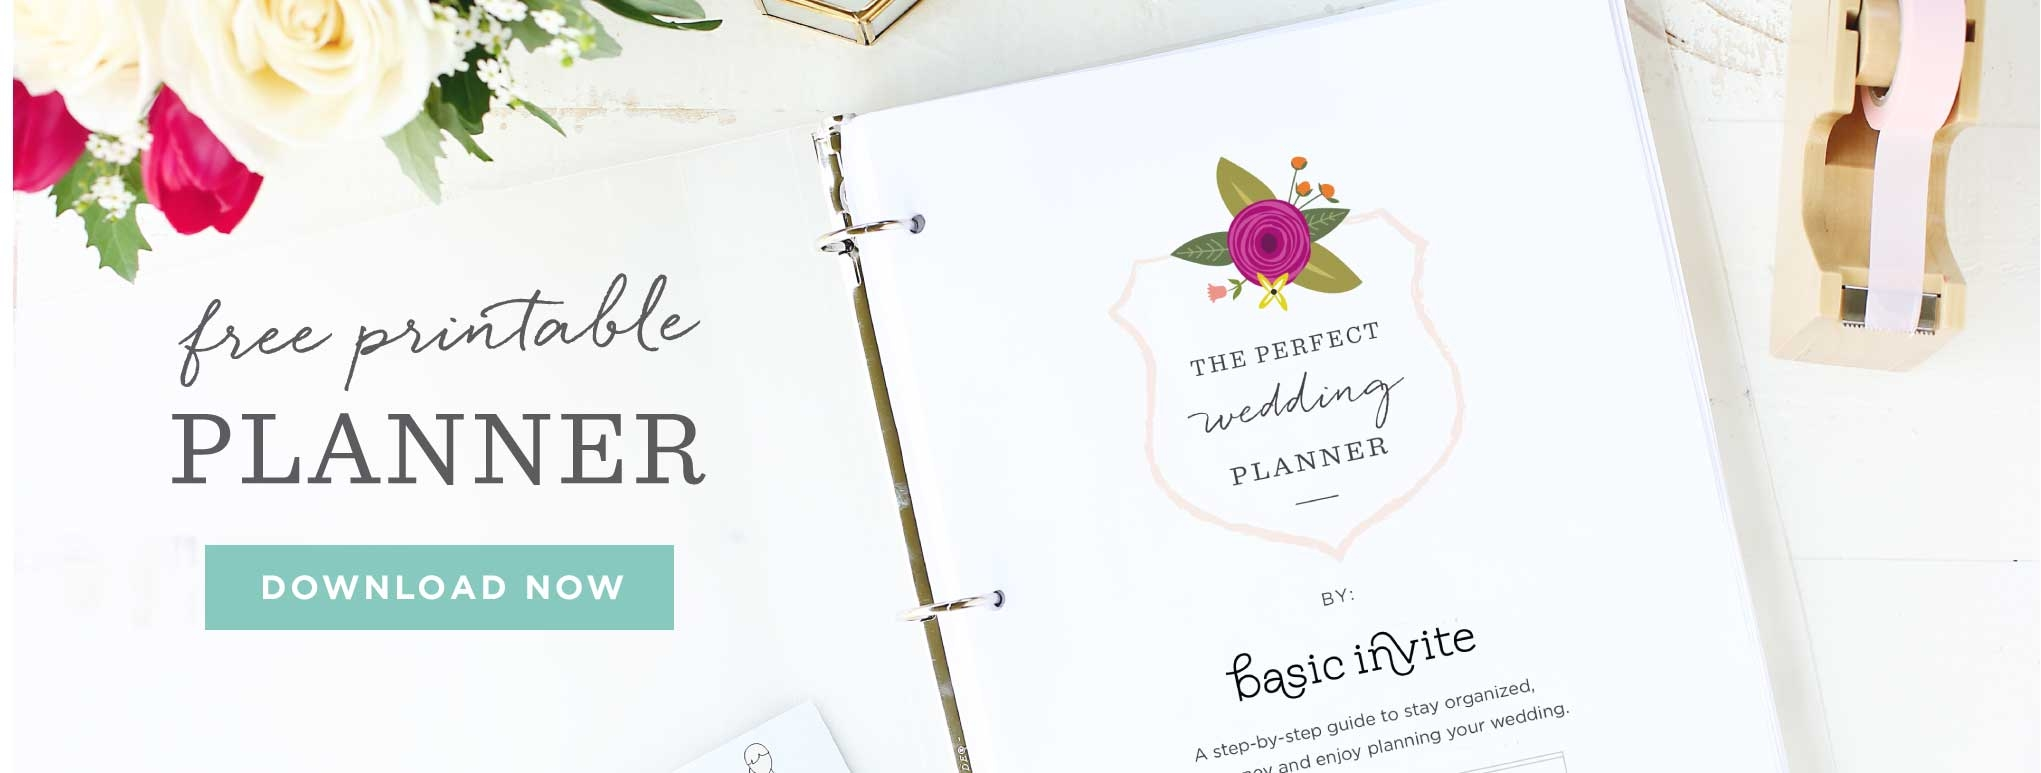 Free downloadable wedding planner printable.